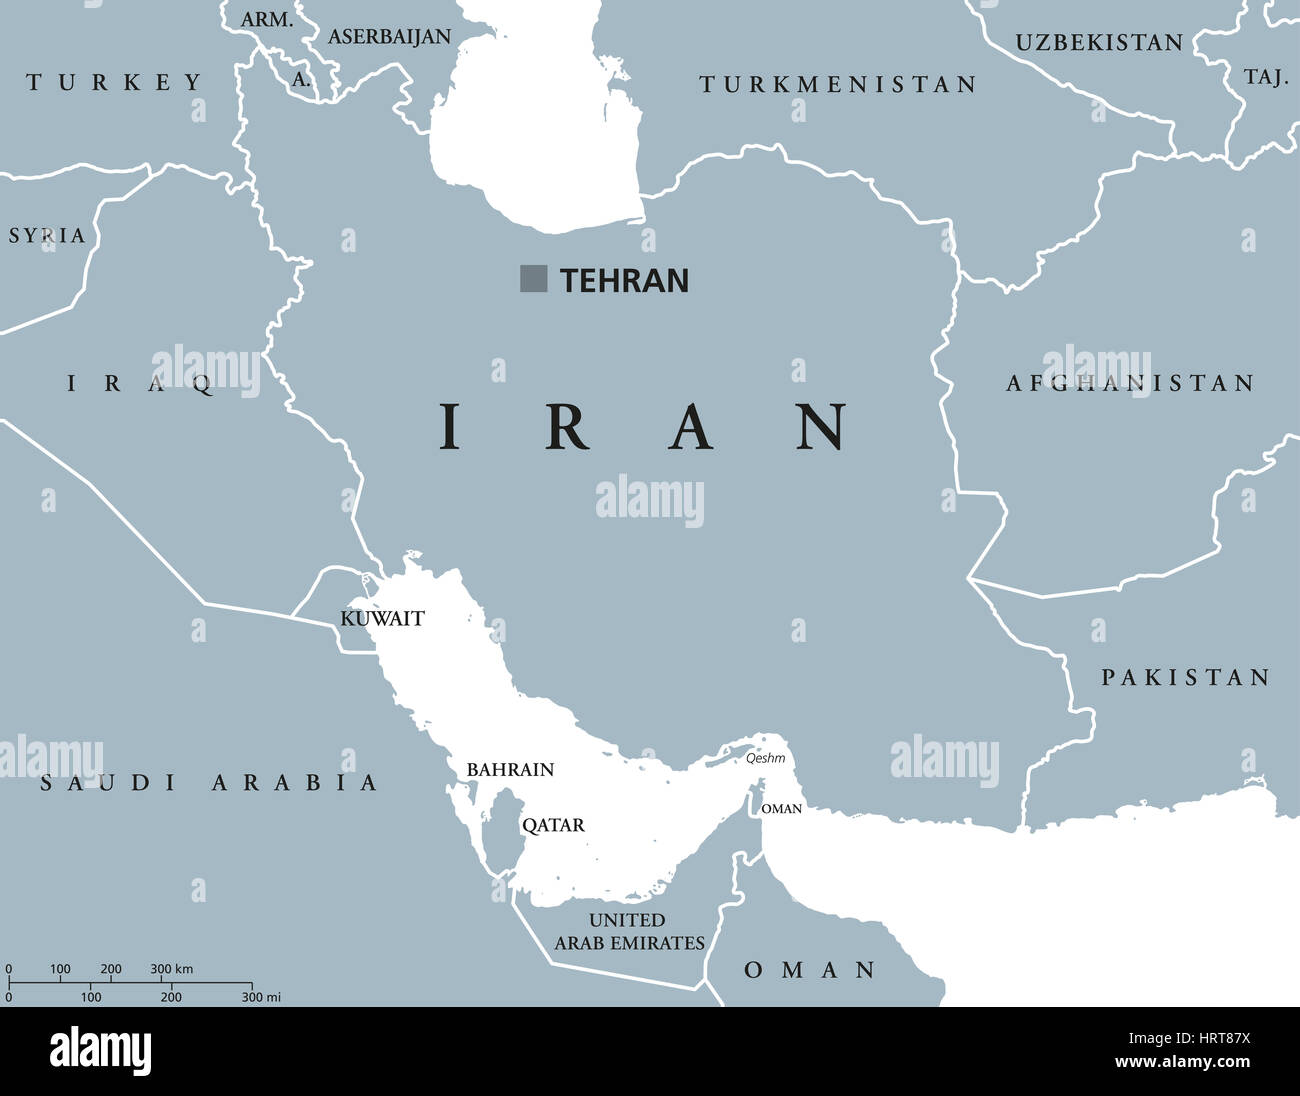 Iran political map with capital tehran national borders and stock iran political map with capital tehran national borders and stock photo 135143006 alamy gumiabroncs Images